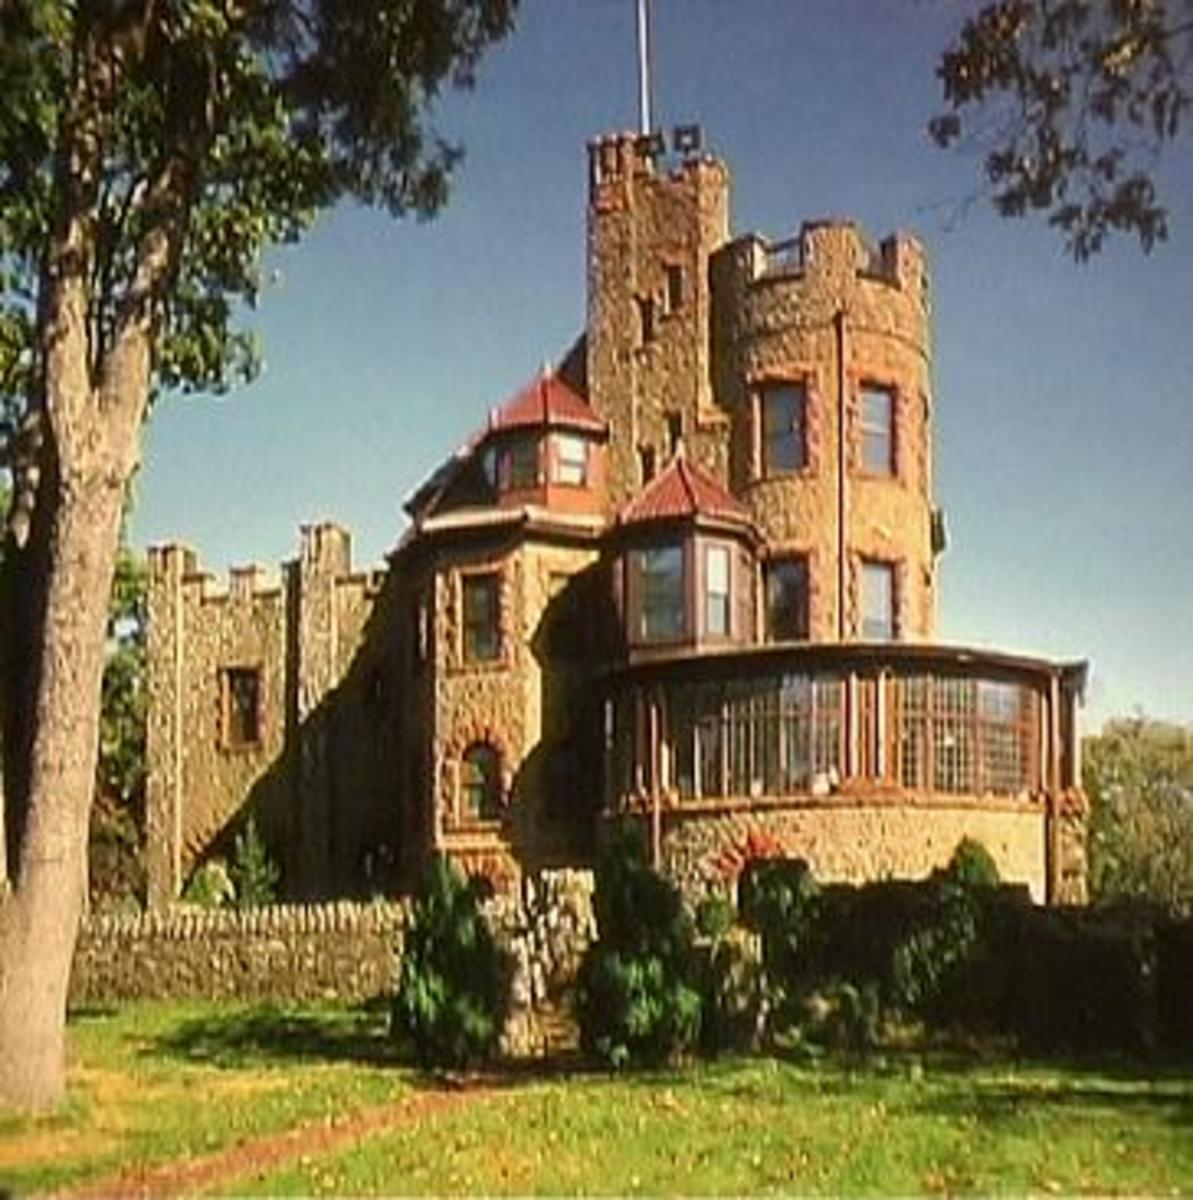 Photo of Kip's Castle from Viviun.com